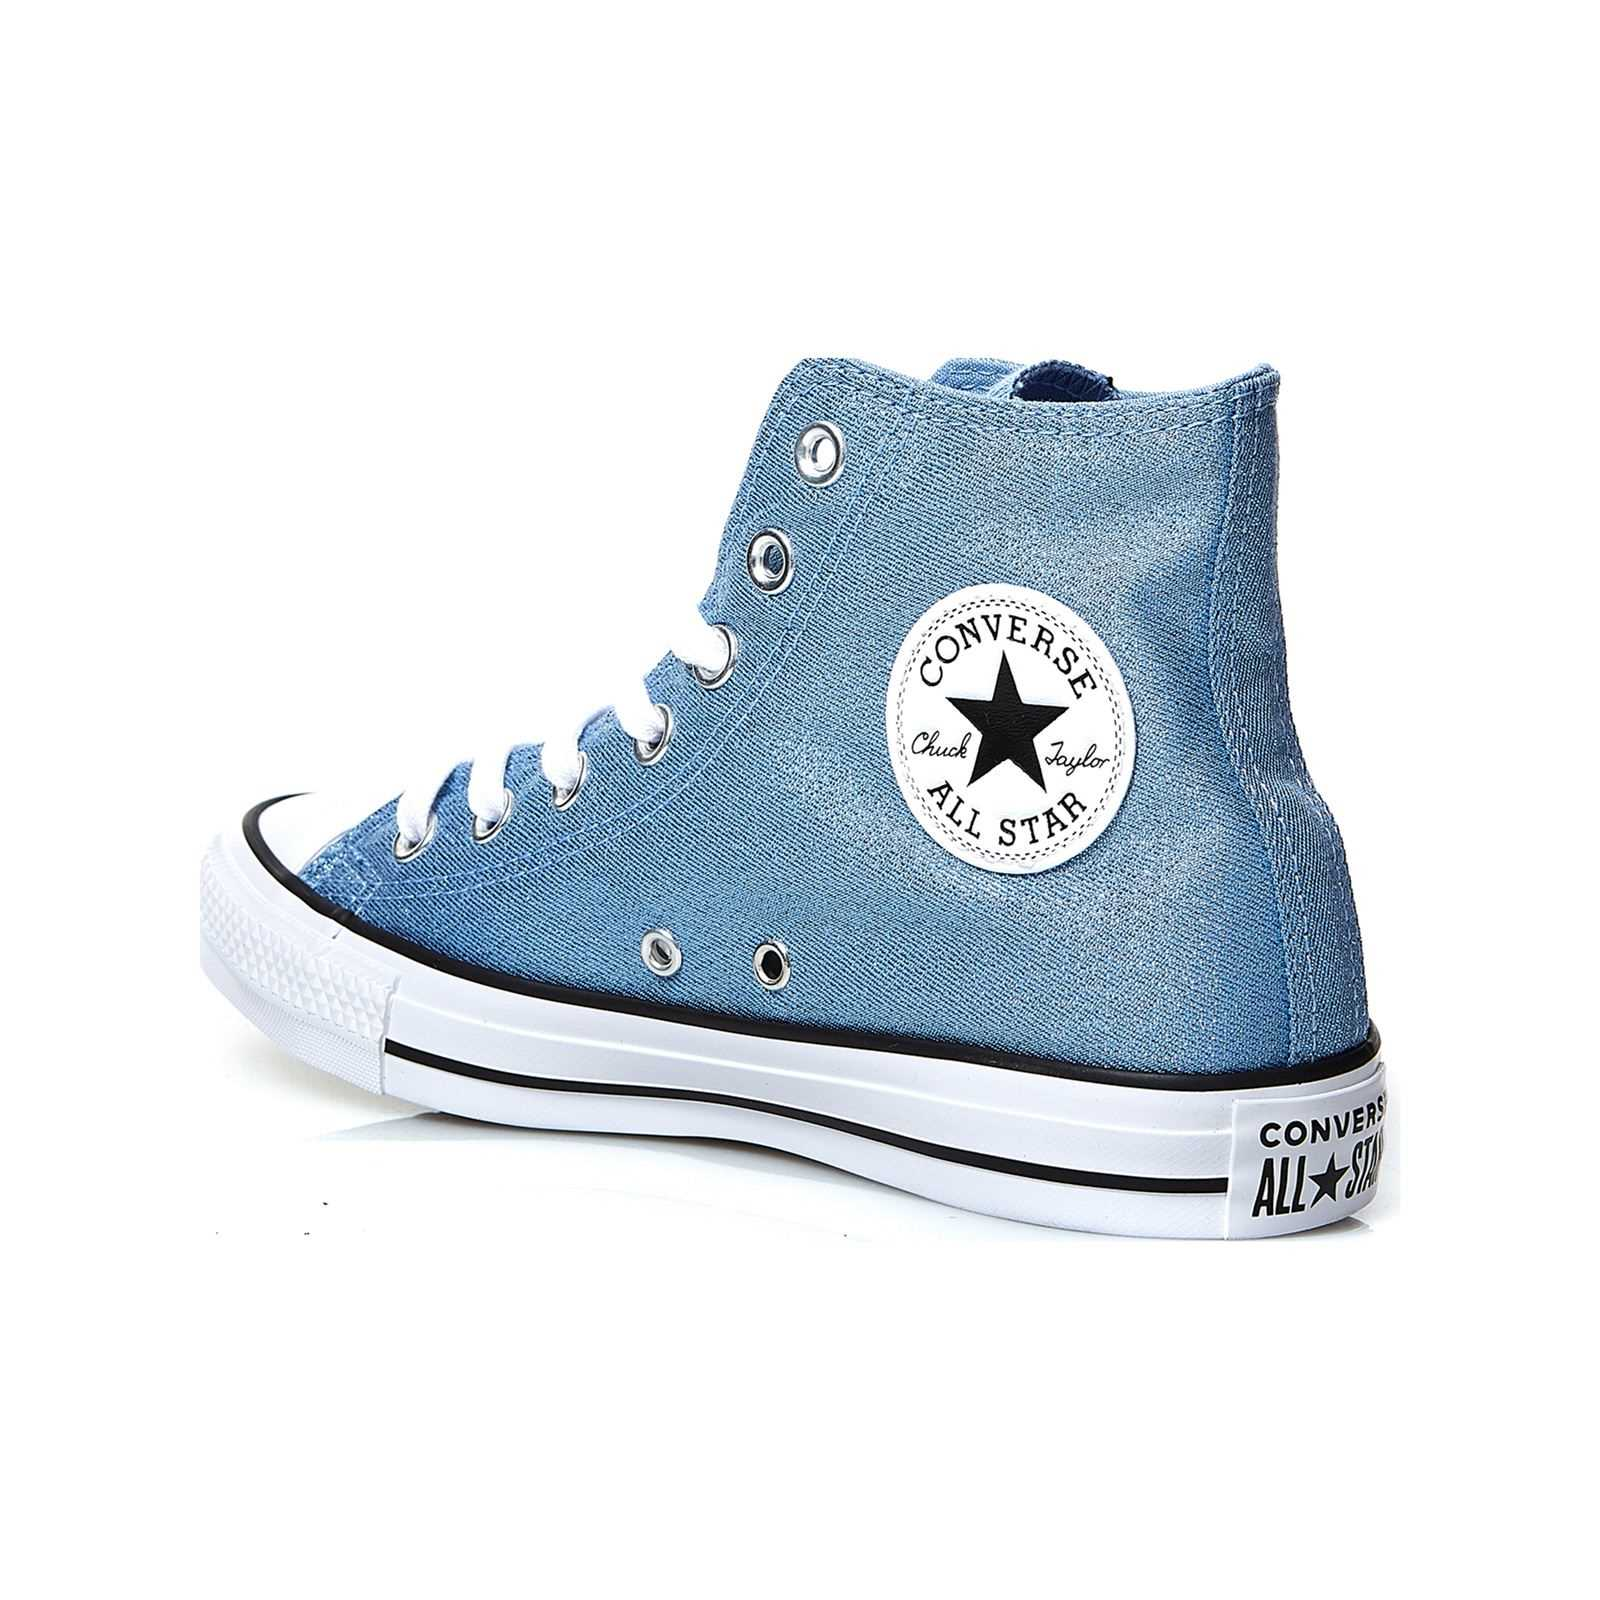 2converse sneakers alte